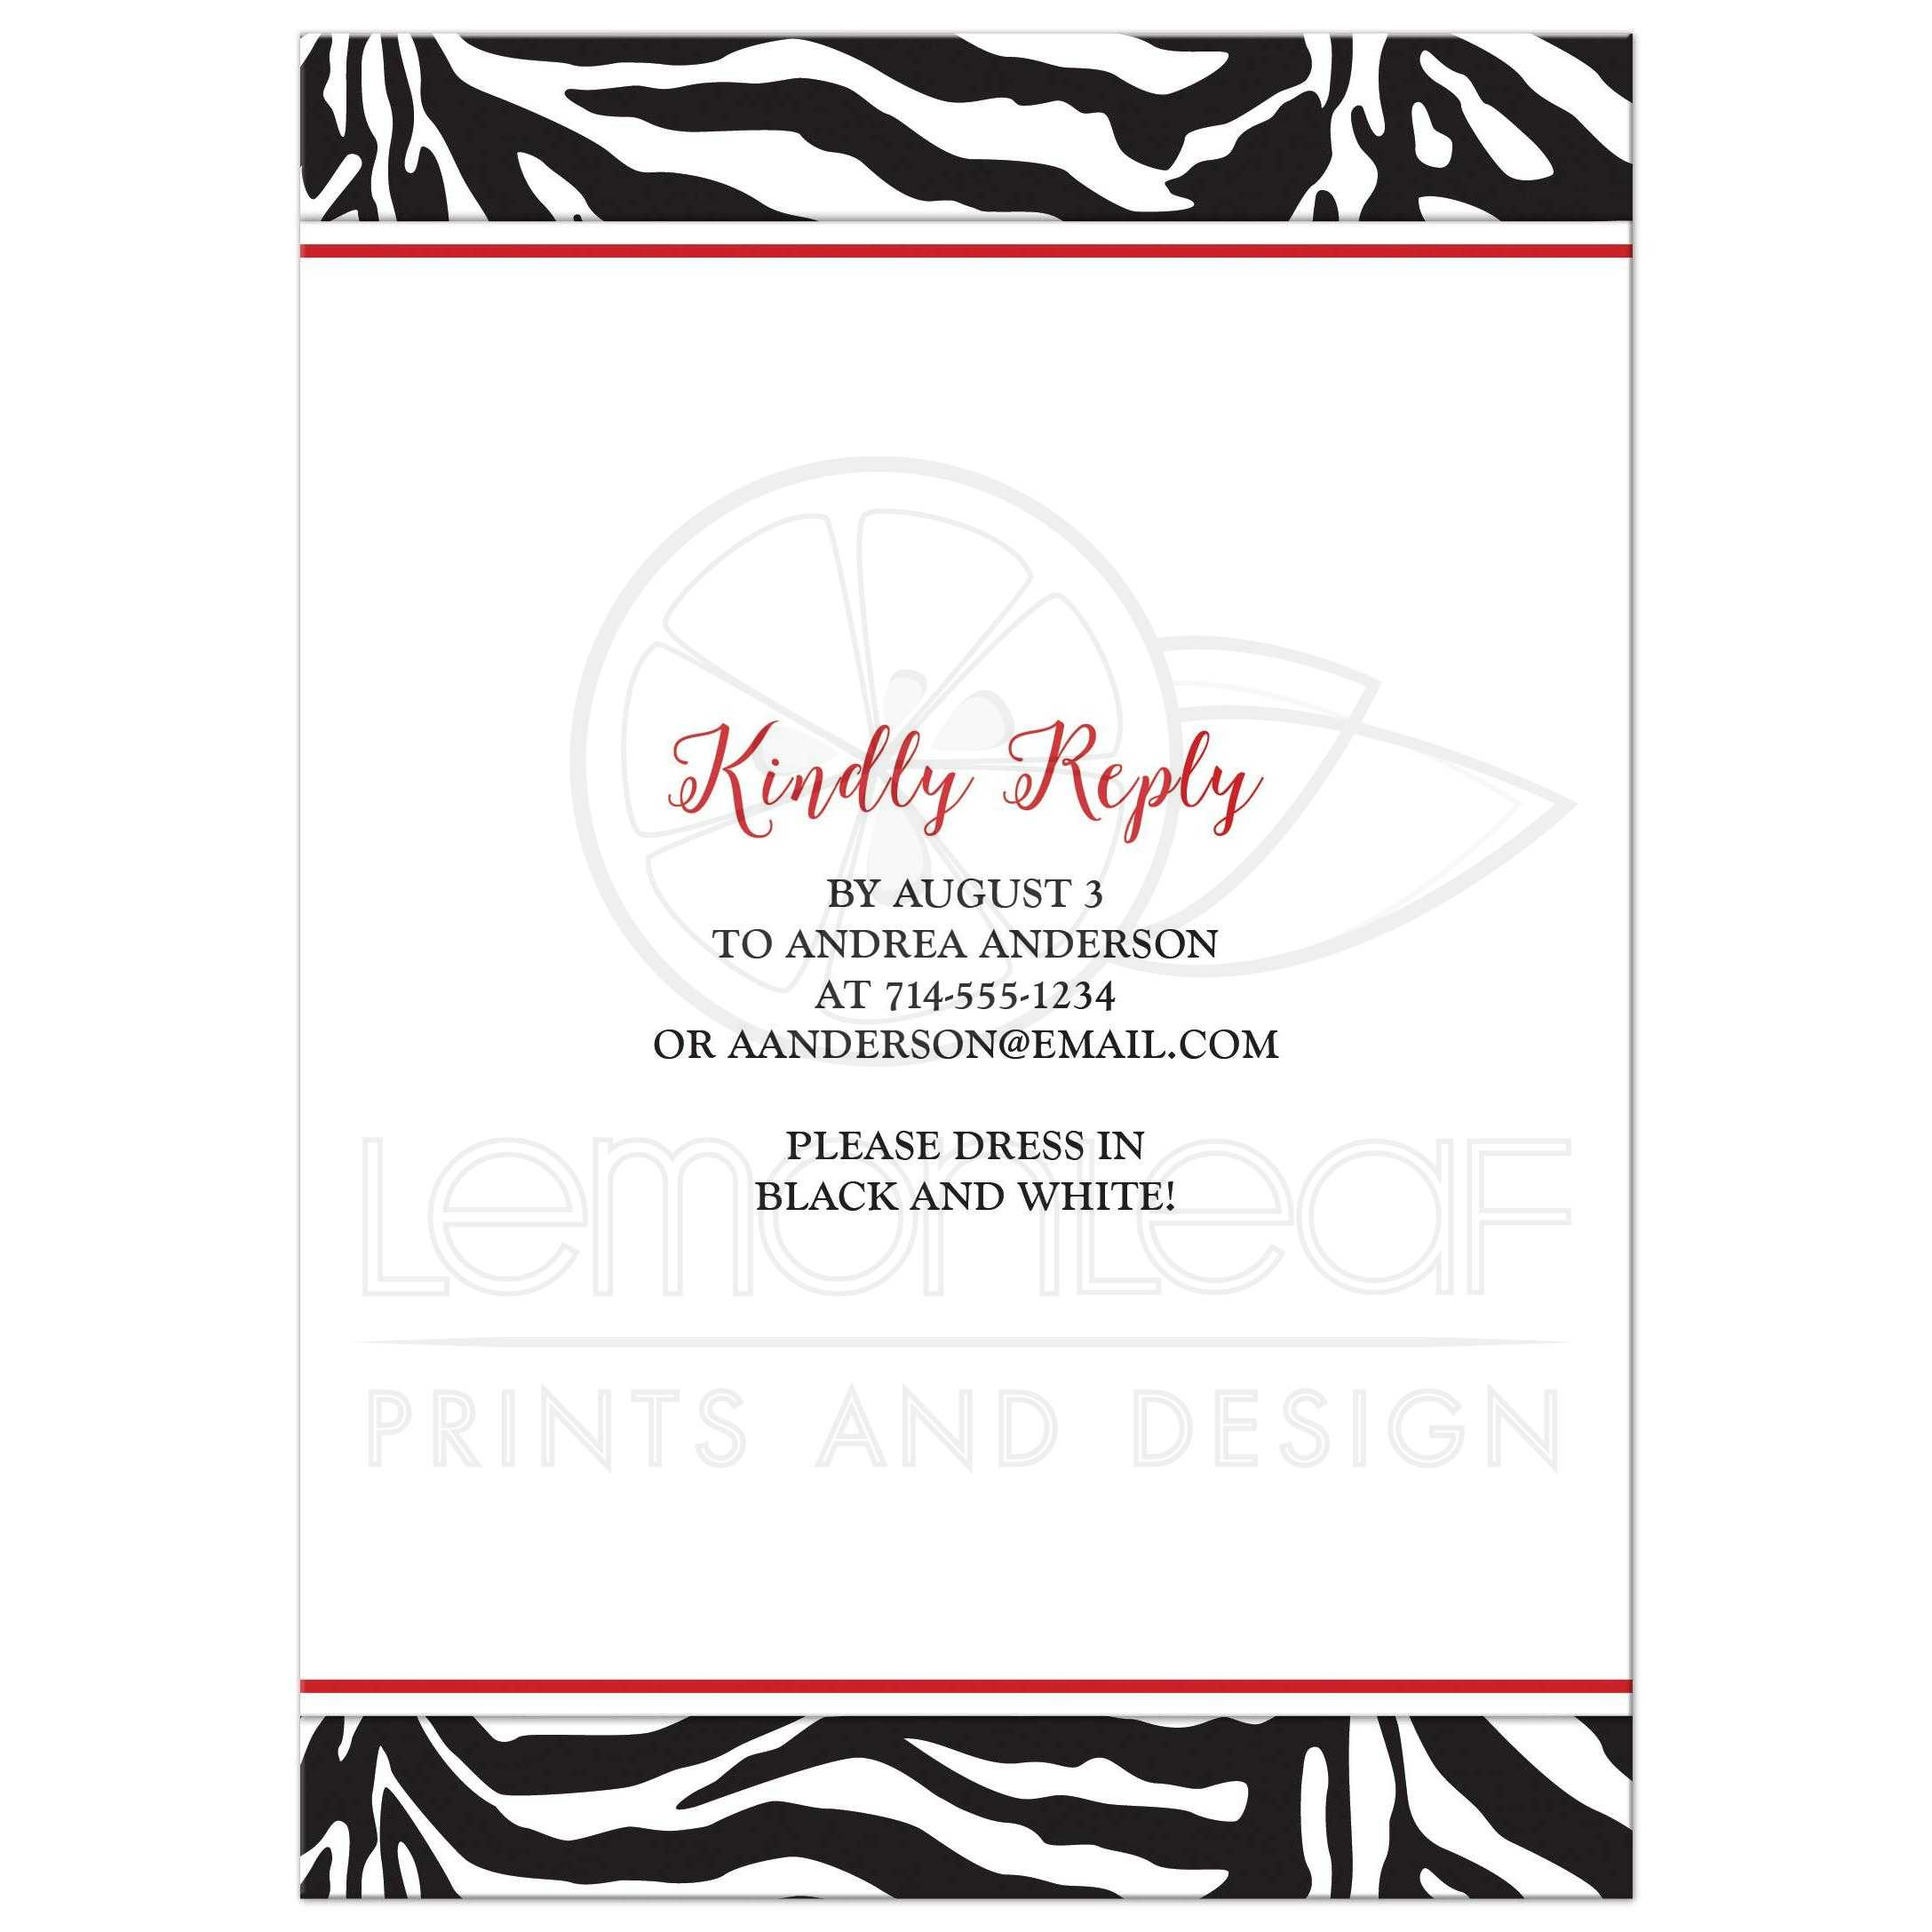 sweet 16 birthday invitation | chic black white zebra print red daisy, Birthday invitations